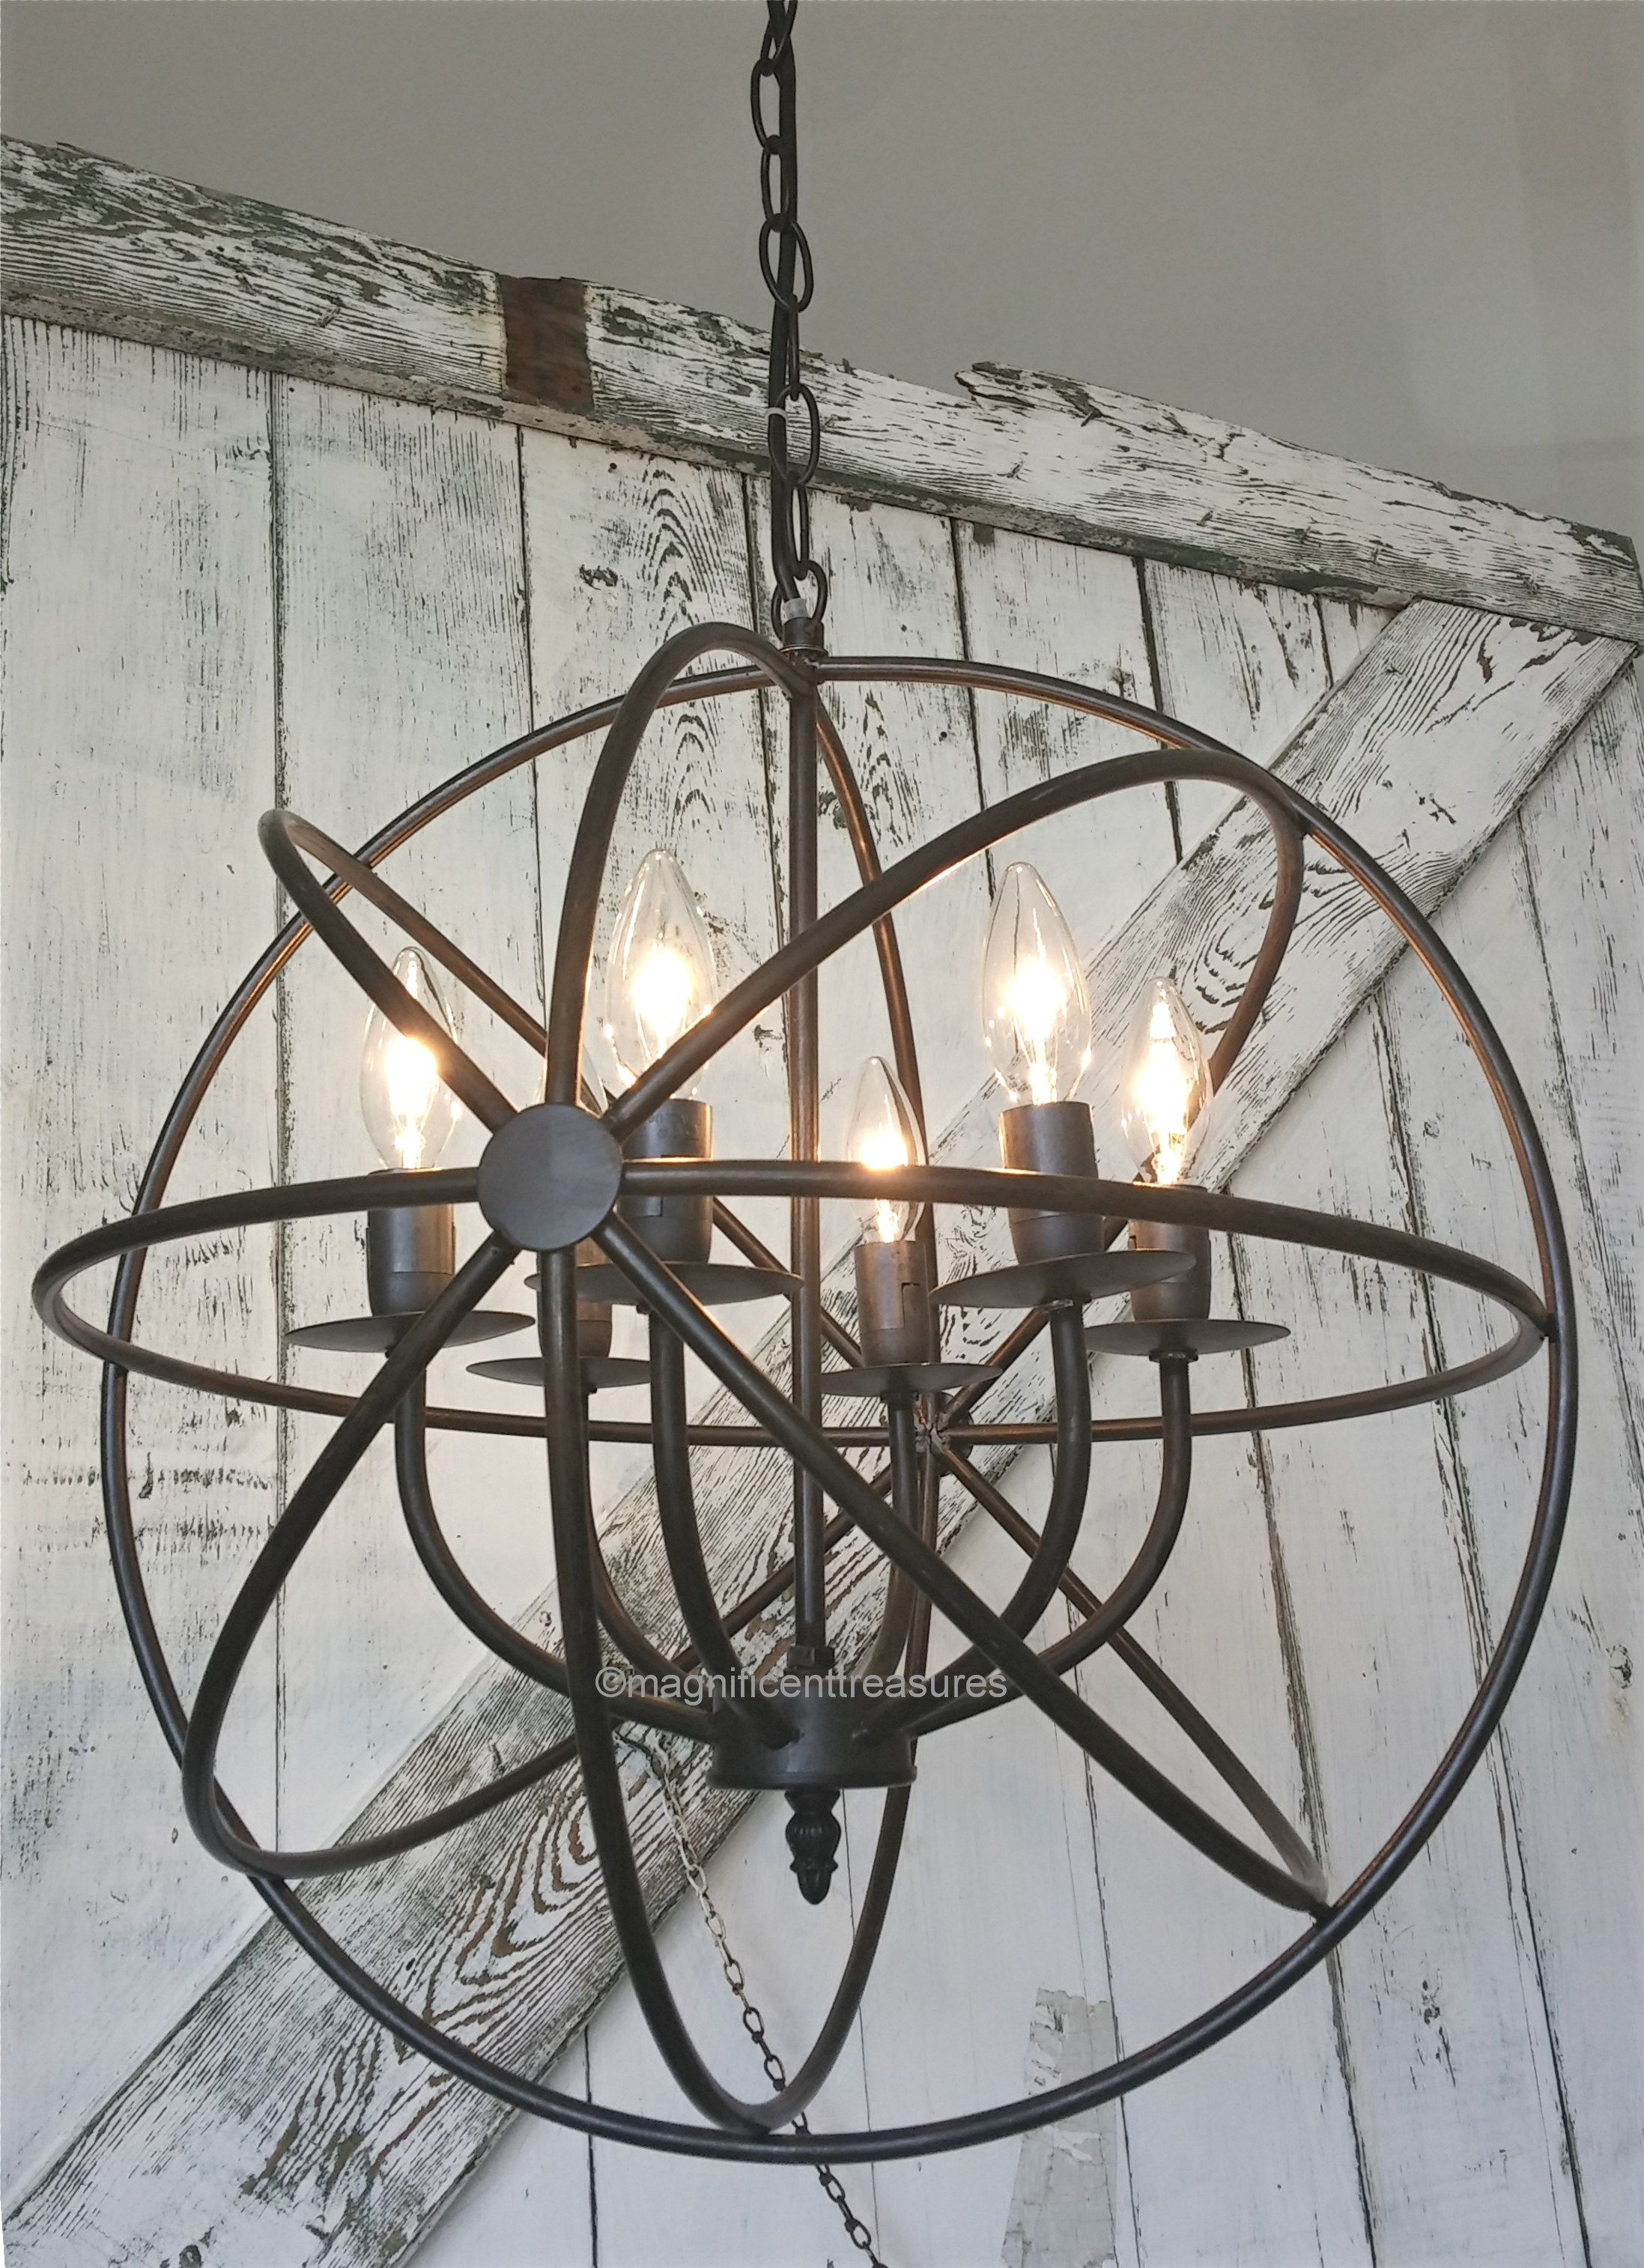 Industrial rustic metal round armillary sphere chandelier light industrial rustic metal round armillary sphere chandelier light fixture aloadofball Image collections